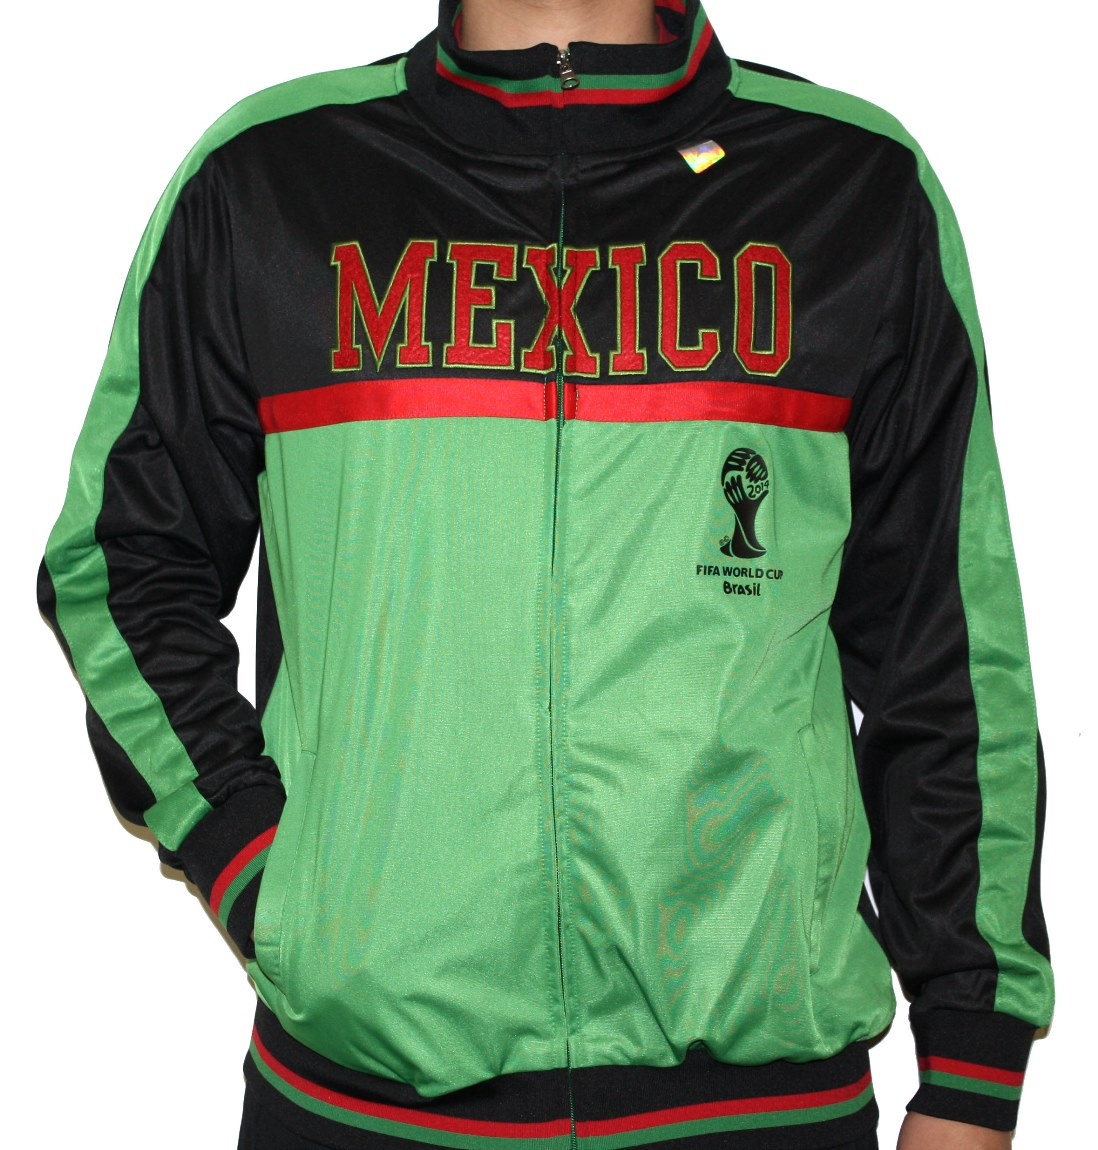 Mexico FIFA 2014 World Cup Soccer Embroidered Track Jacket